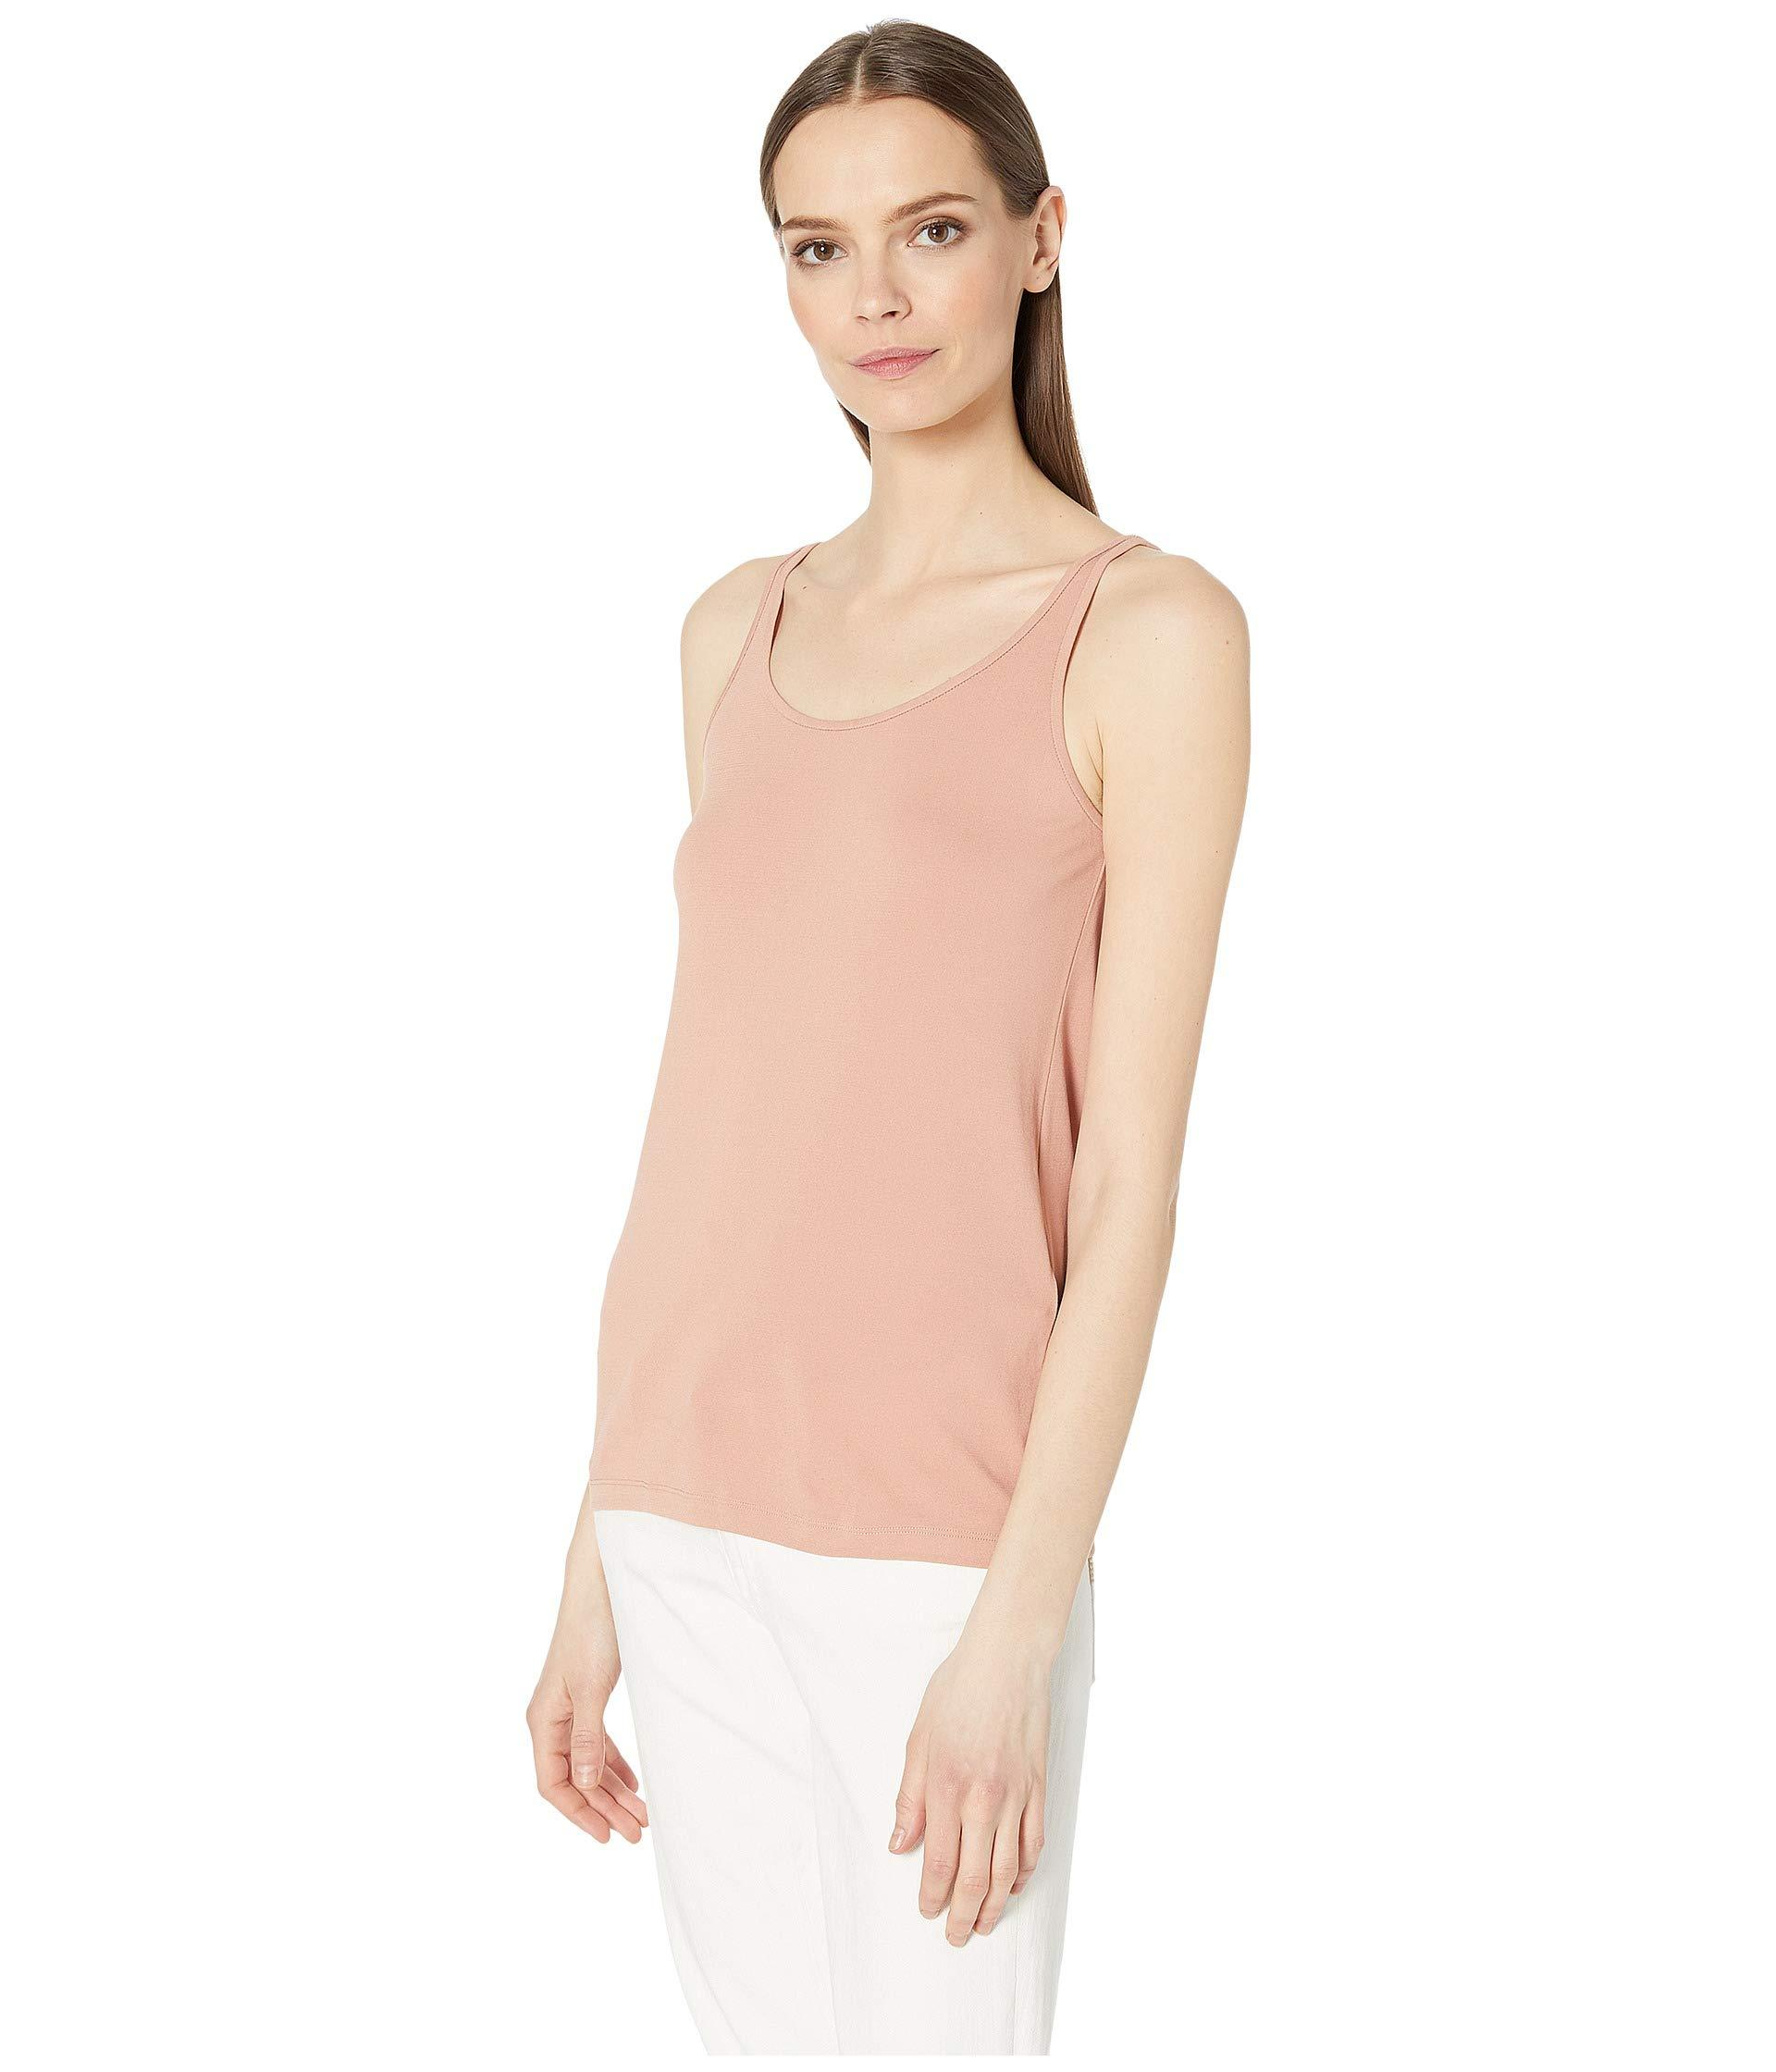 c29c37f370f51e Lyst - Eileen Fisher Stretch Silk Jersey Scoop Neck Long Cami (toffee  Cream) Women s Clothing in Natural